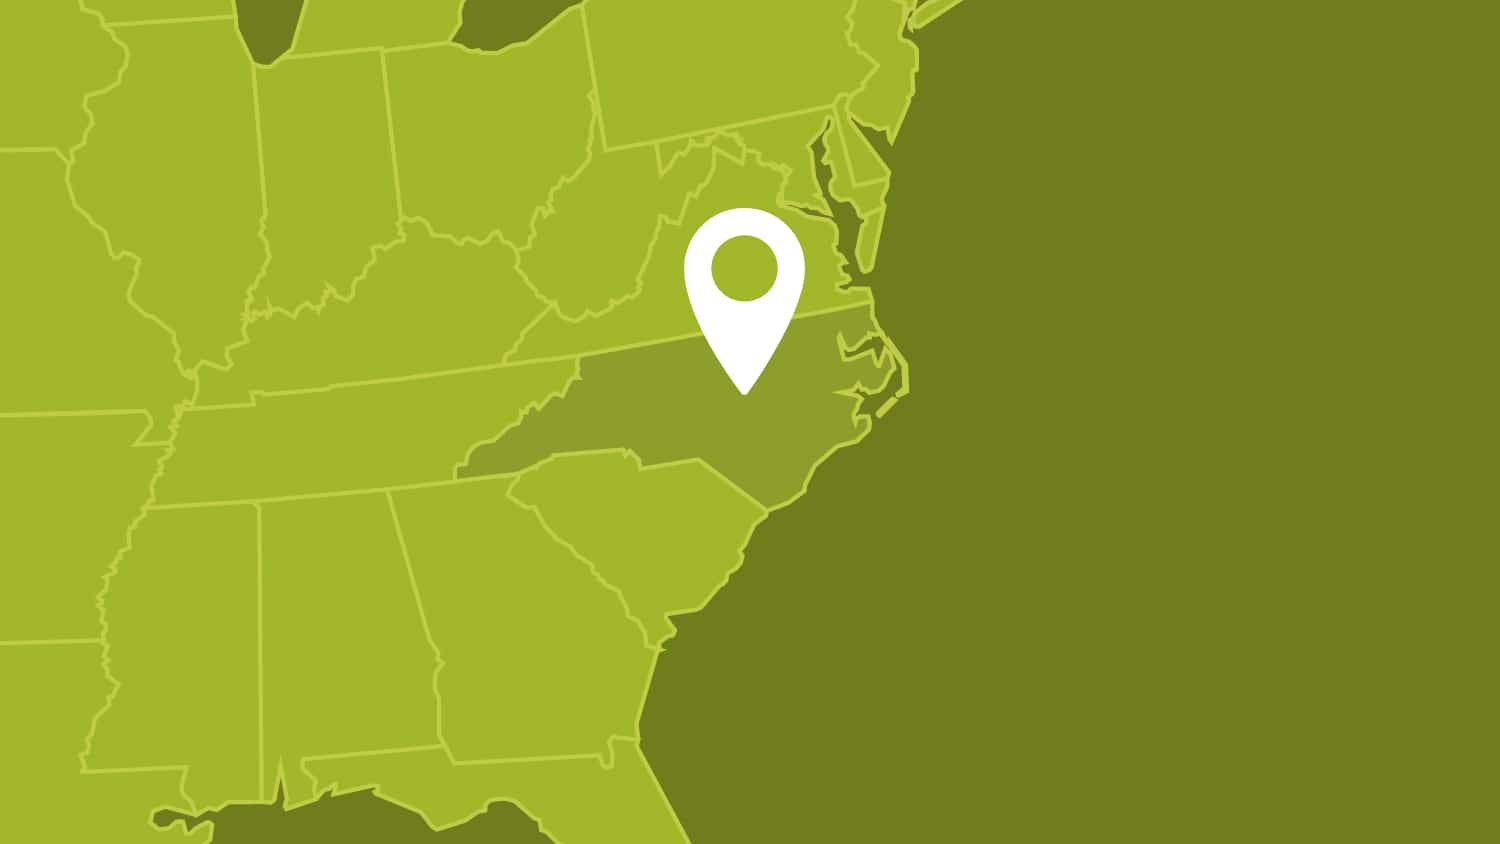 Raleigh is located in the center of North Carolina.